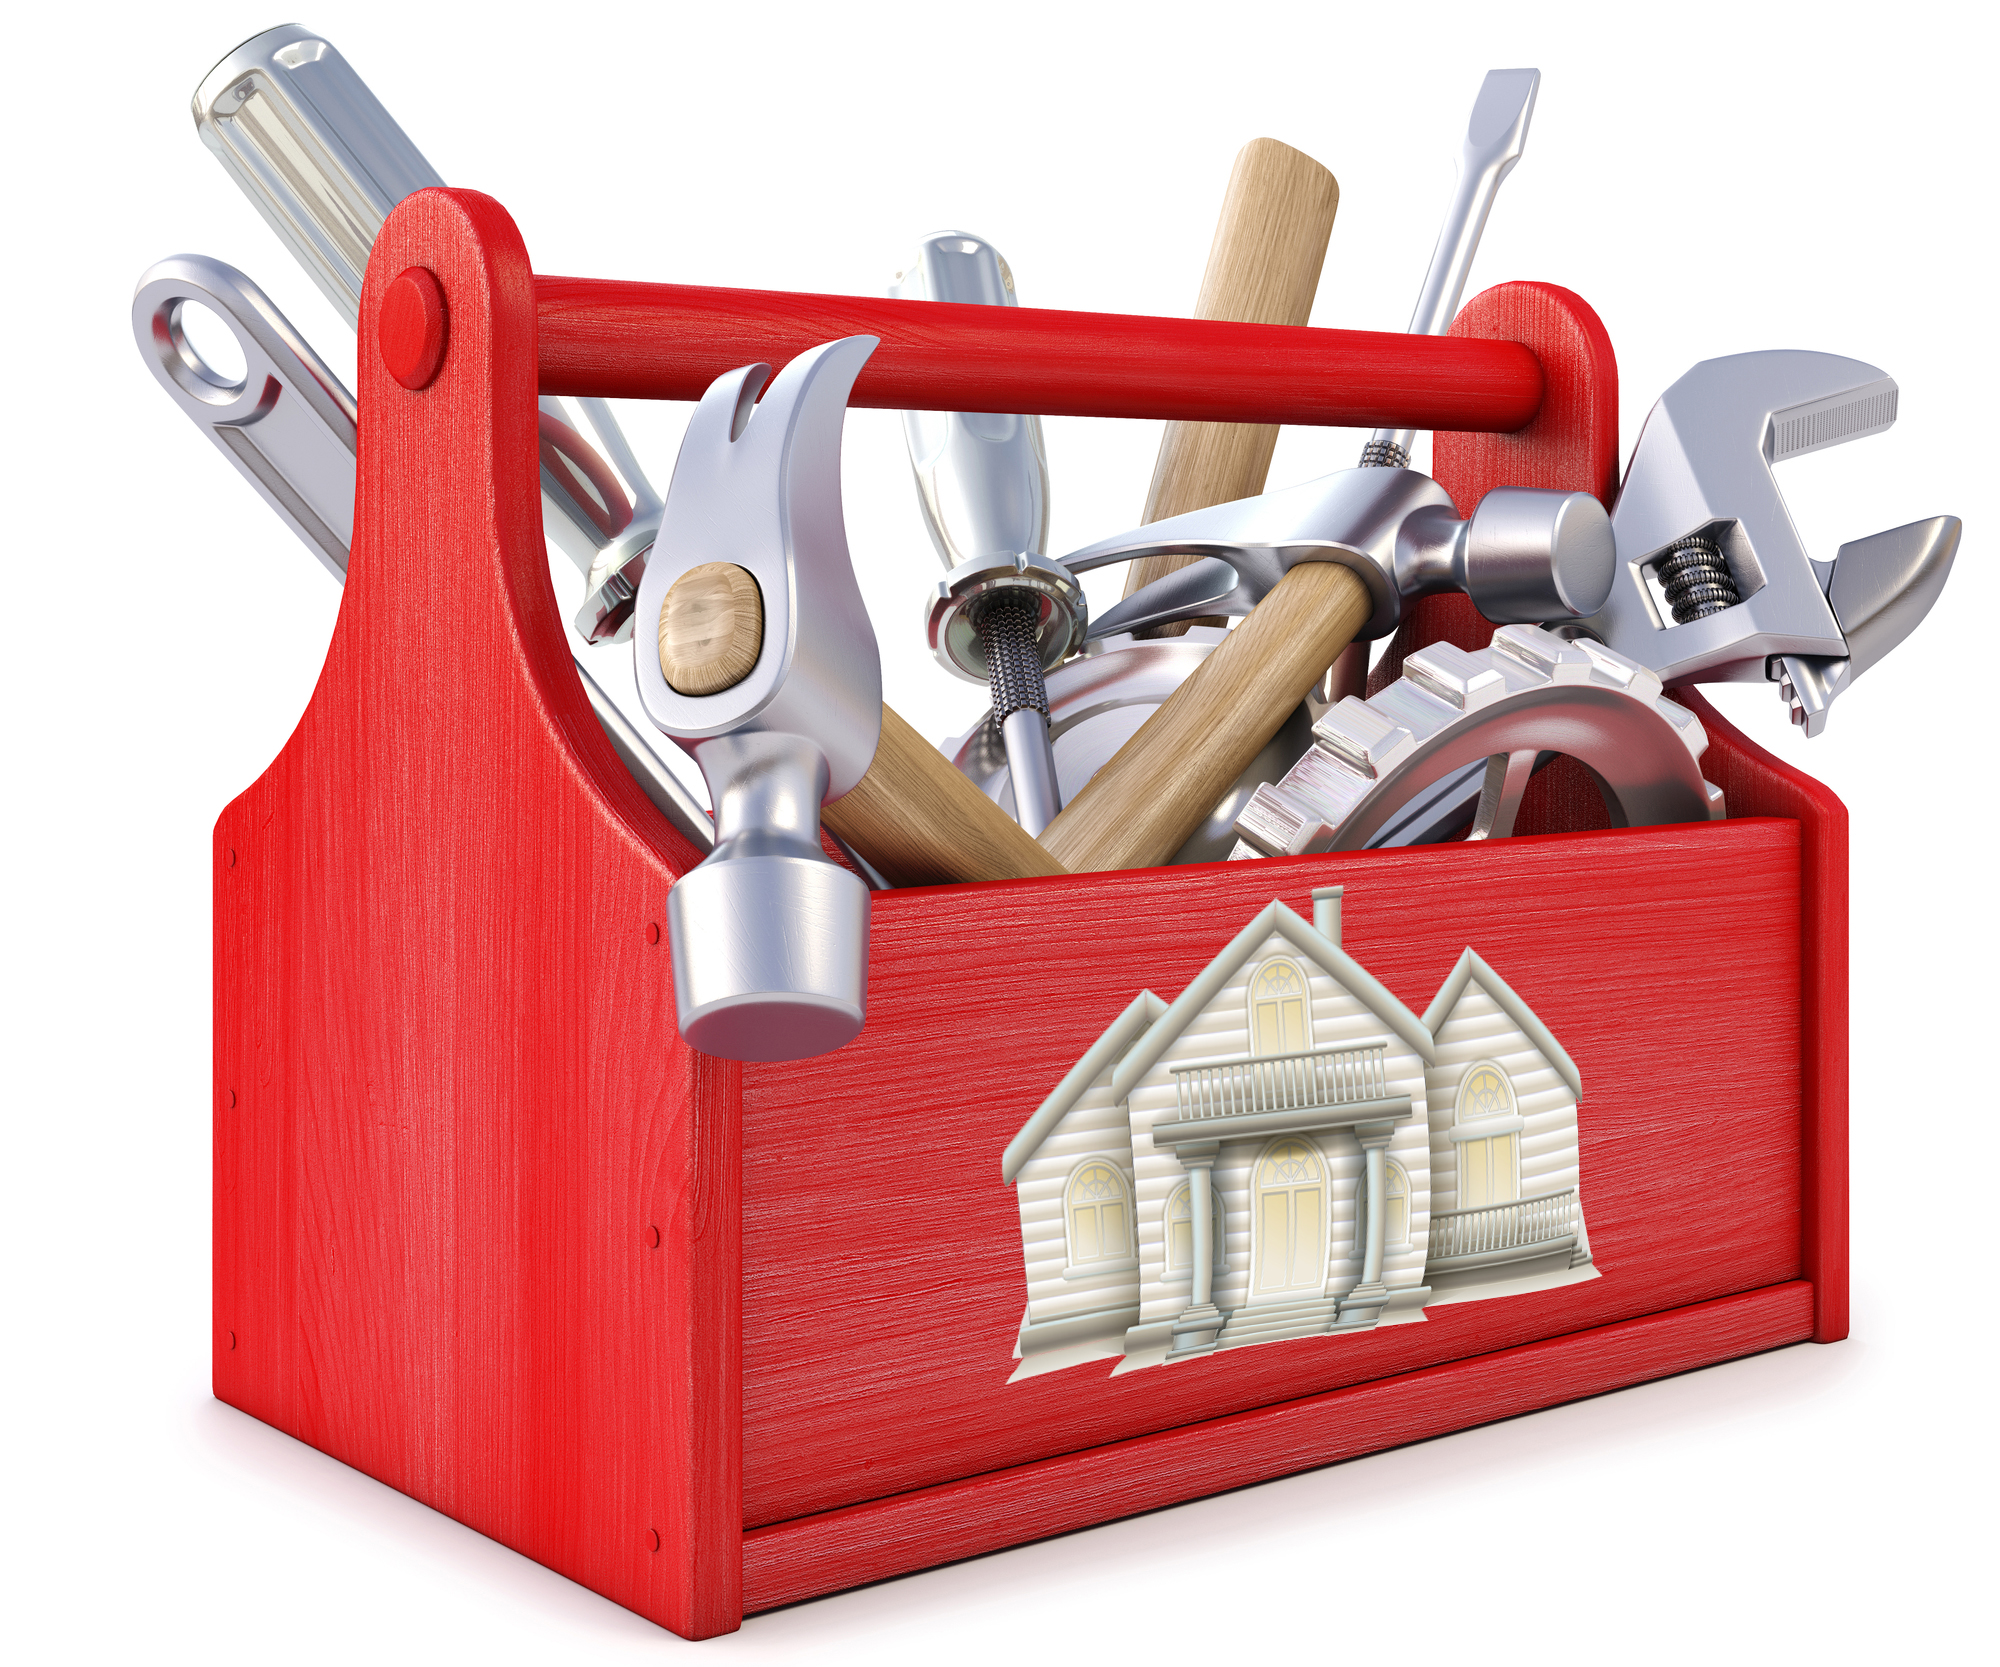 Your Homeowner's Toolbox!